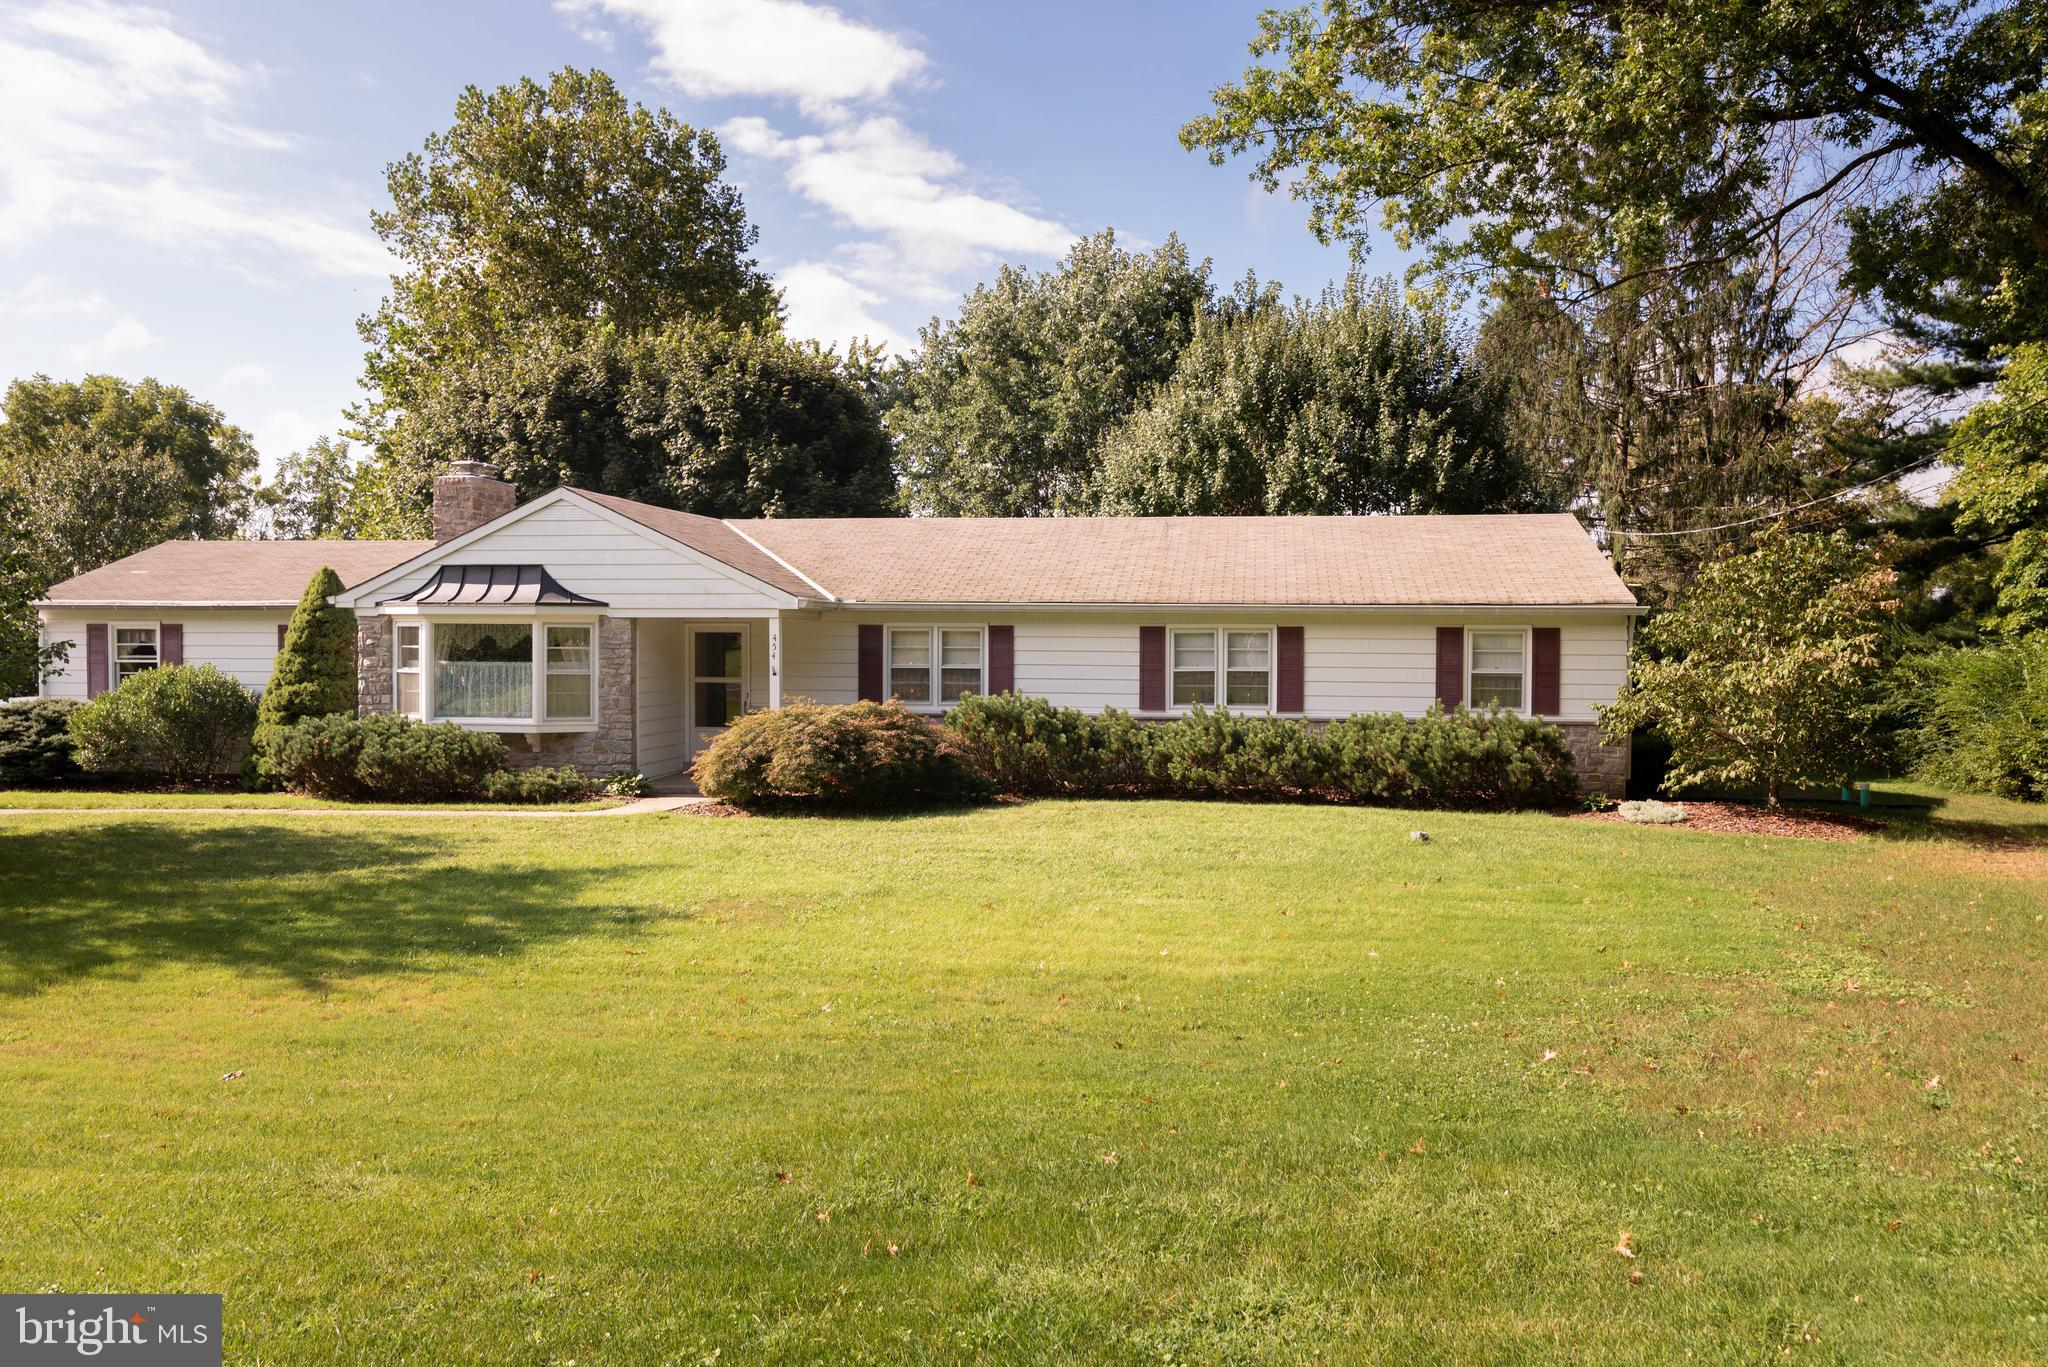 454 SMOKEPIPE ROAD, SOUDERTON, PA 18964